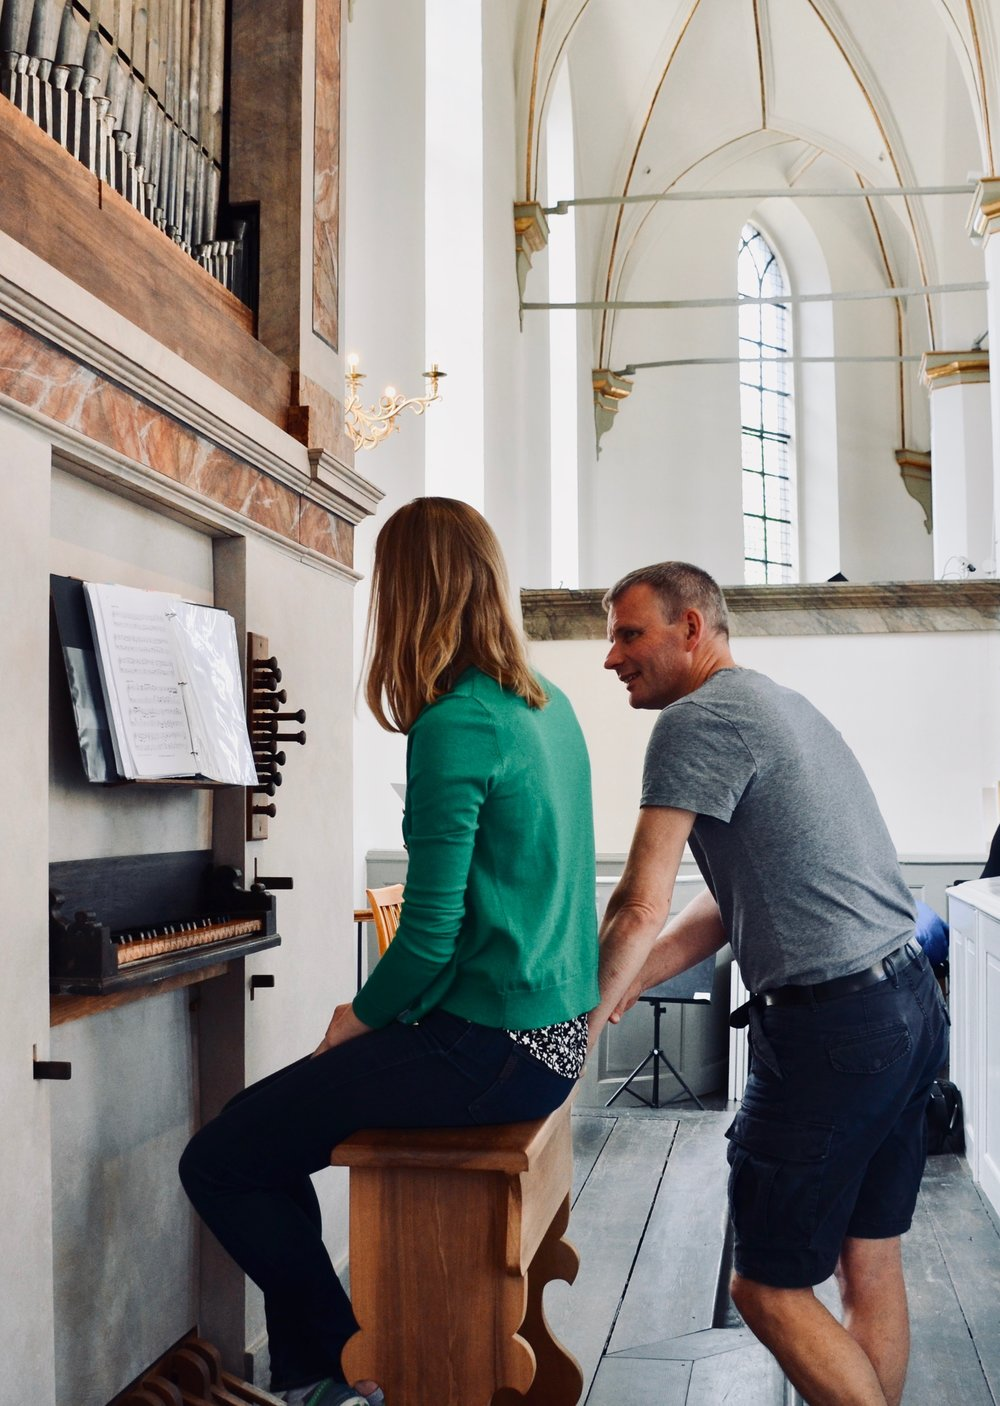 Søren Christian Vestergaard assists Laura Gullett at the Italian Baroque organ, Trinitatis Kirke, Copenhagen.